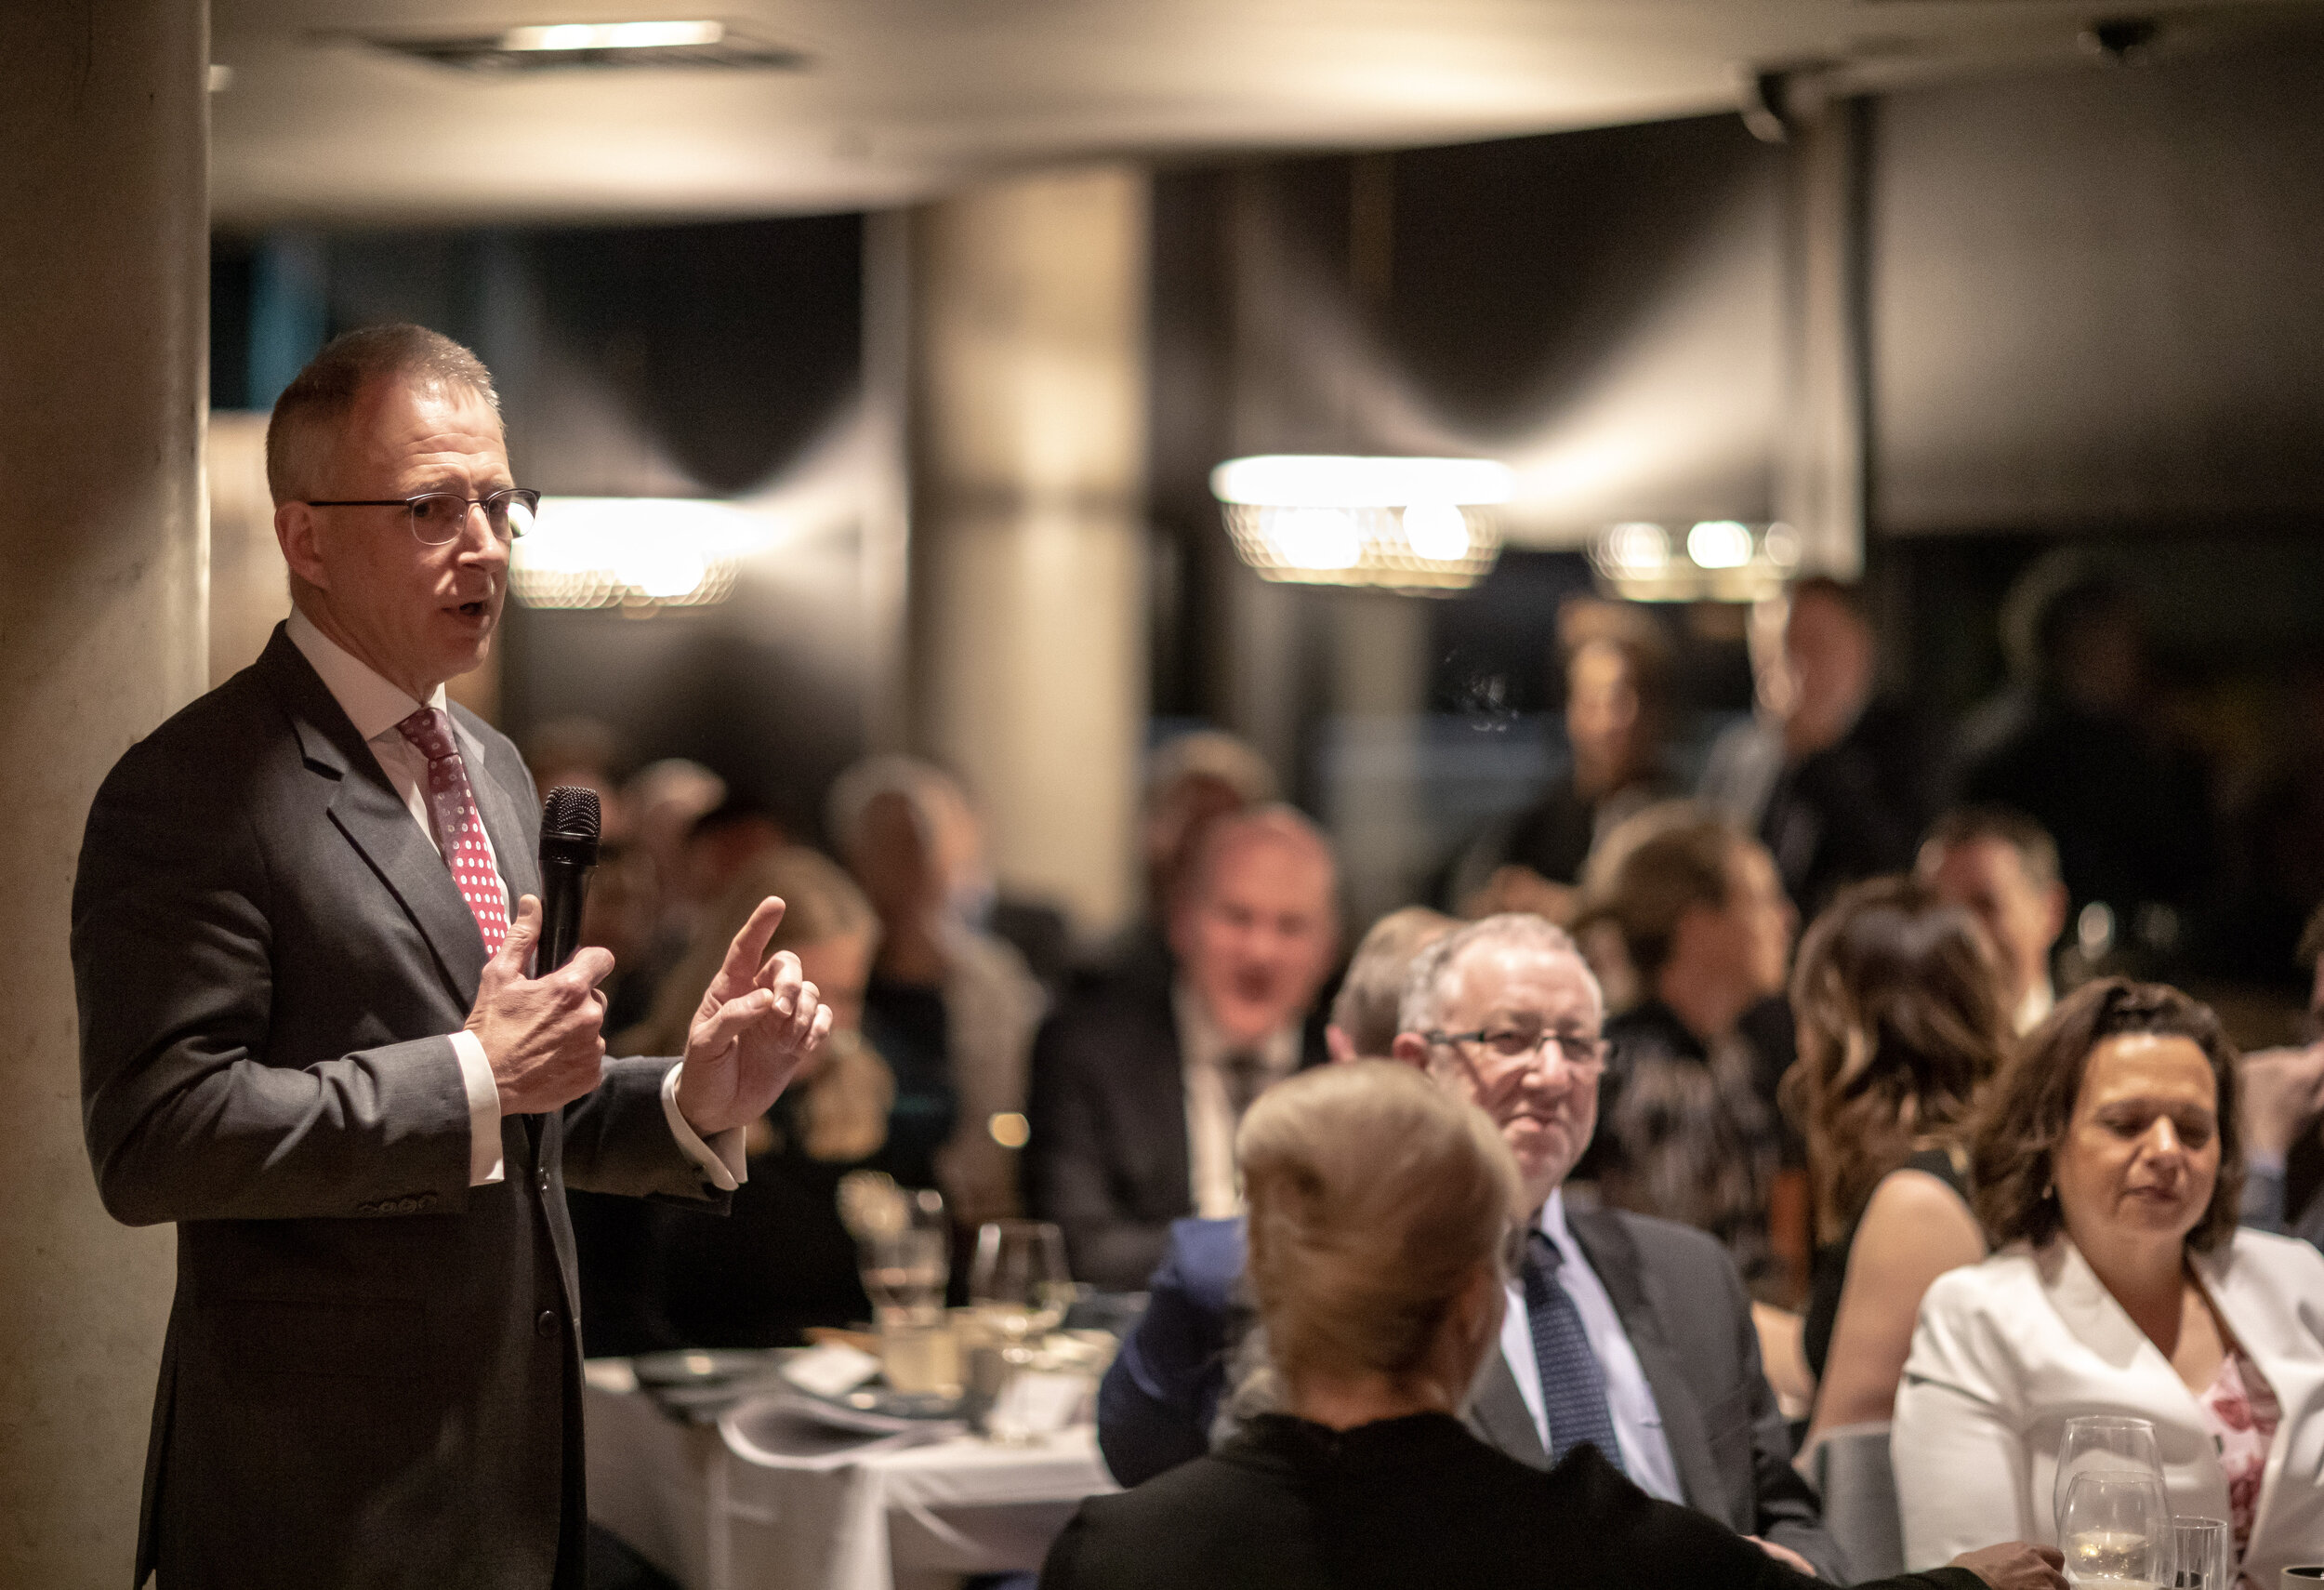 Communications and Arts Minister Paul Fletcher addresses the Screen Stories Canberra dinner.